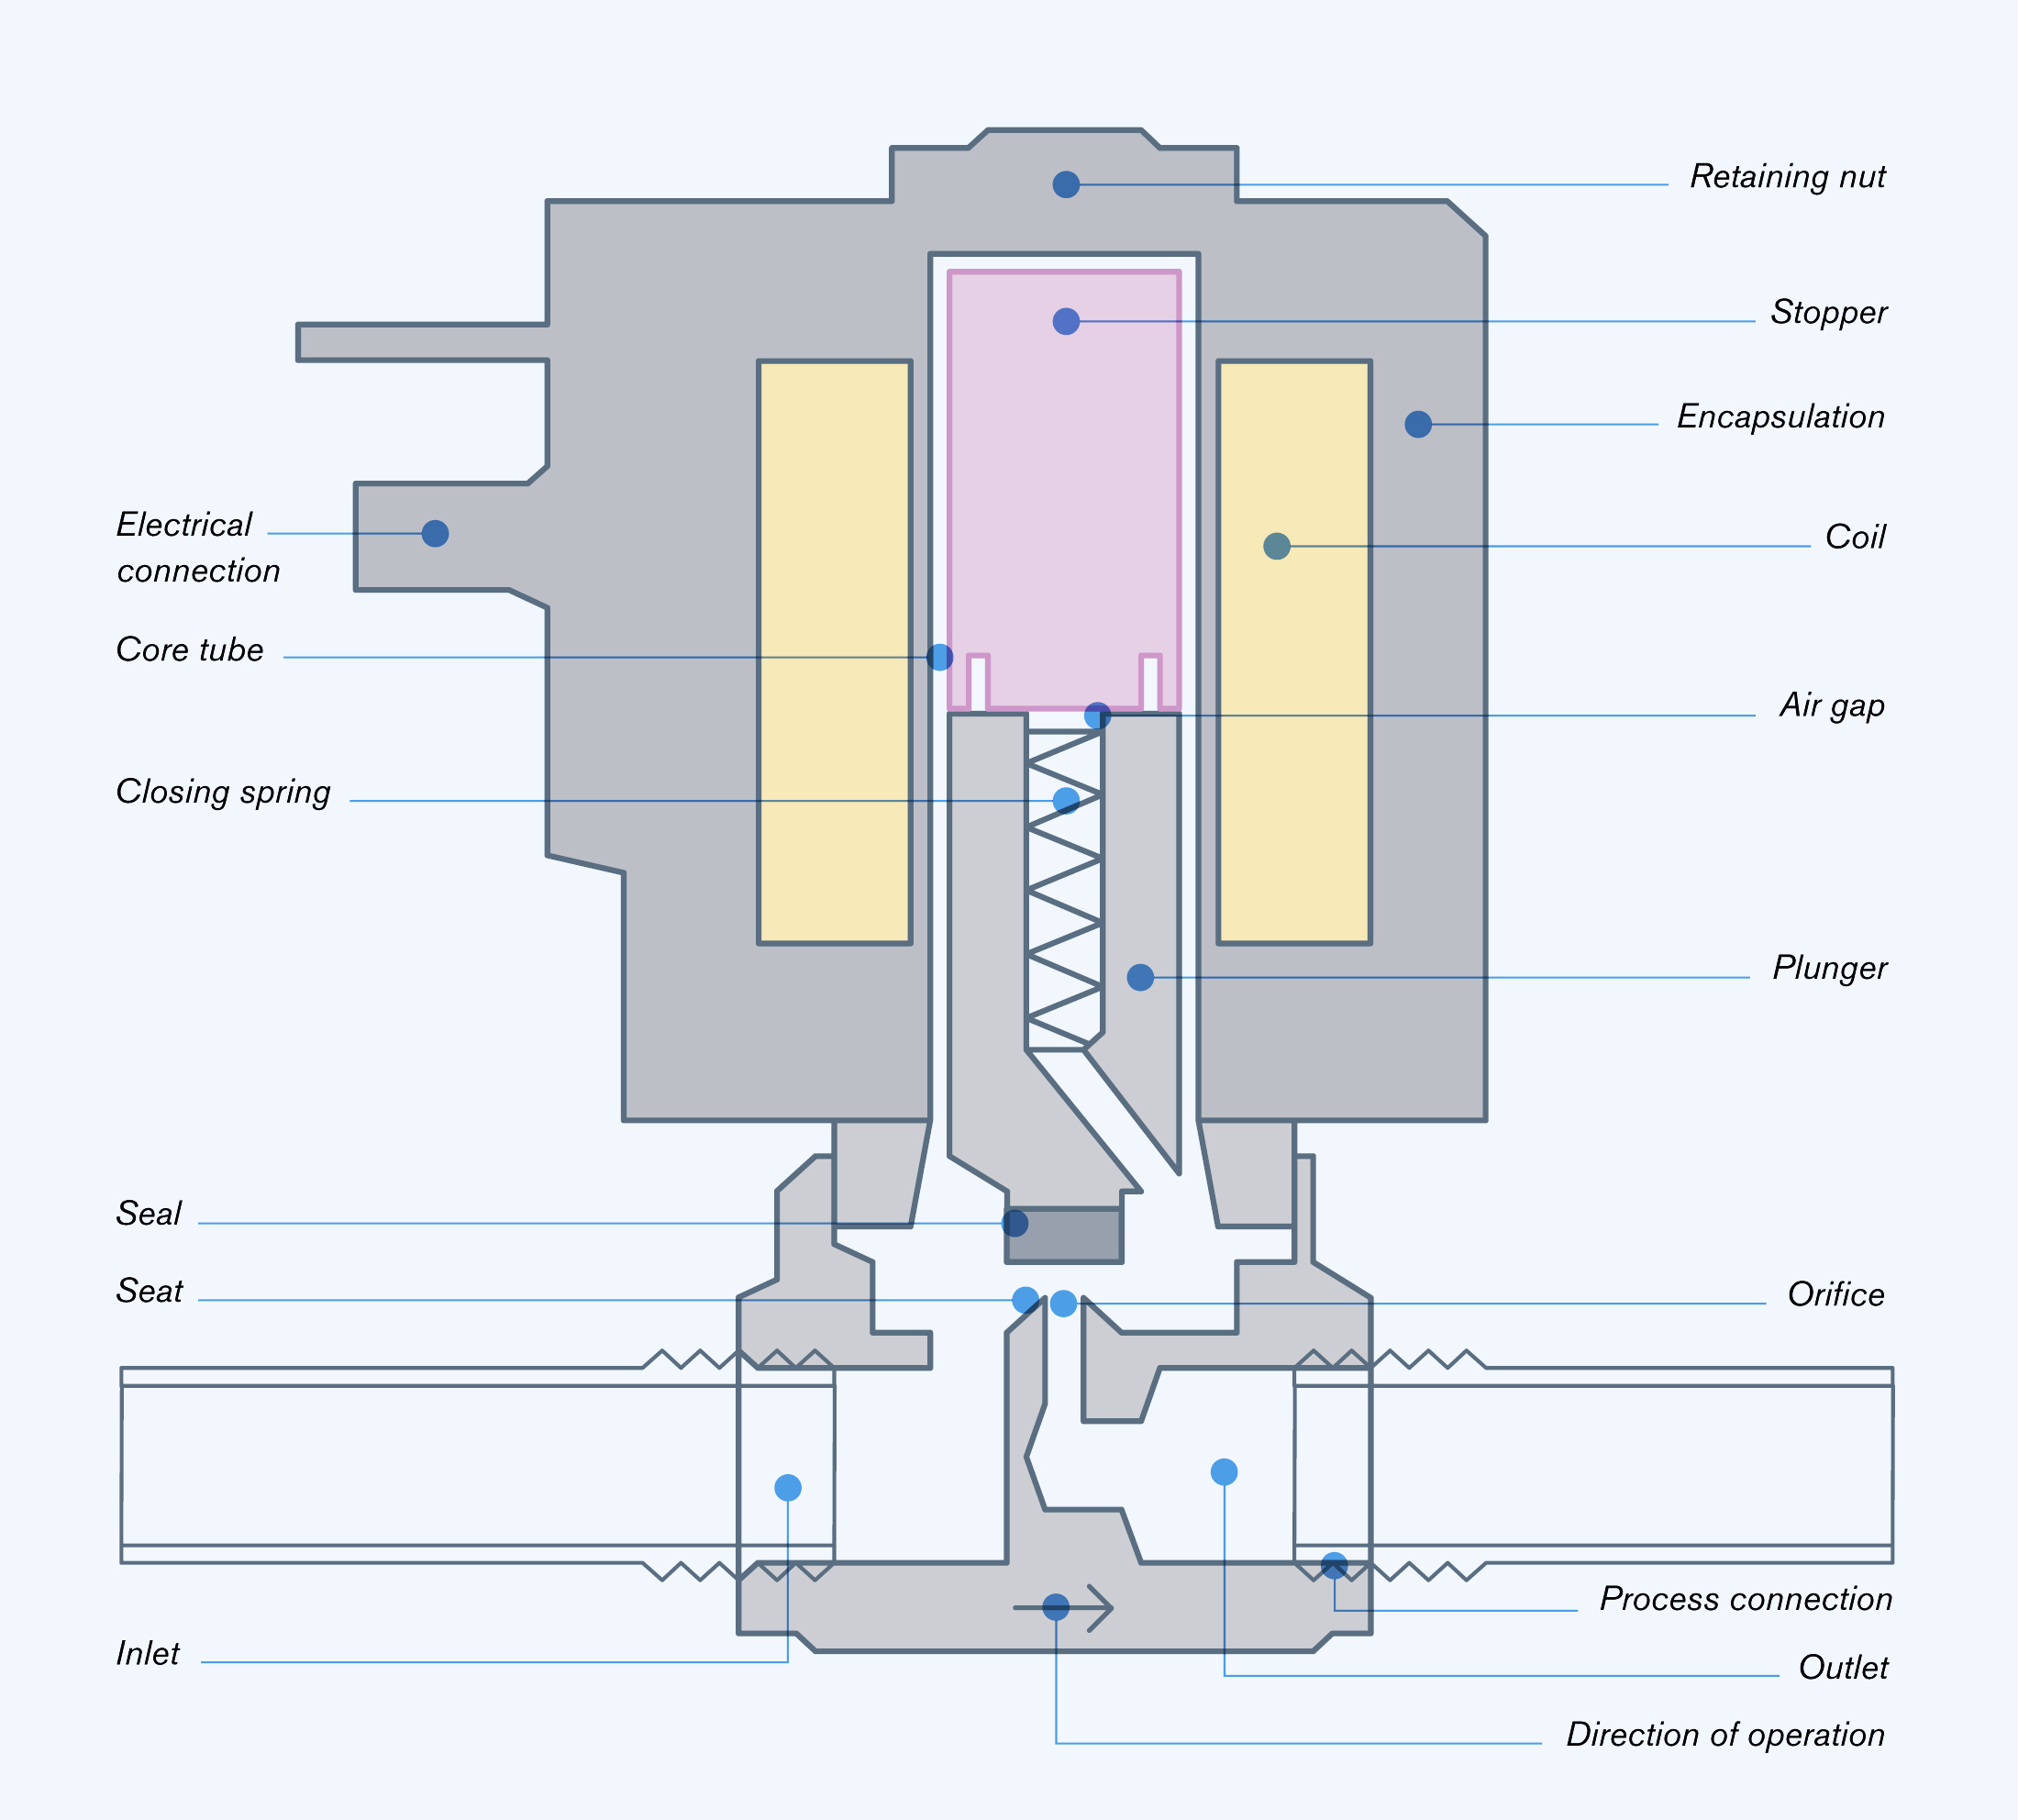 solenoid valve diagram how to understand elizabethan theatre pneumatic get free